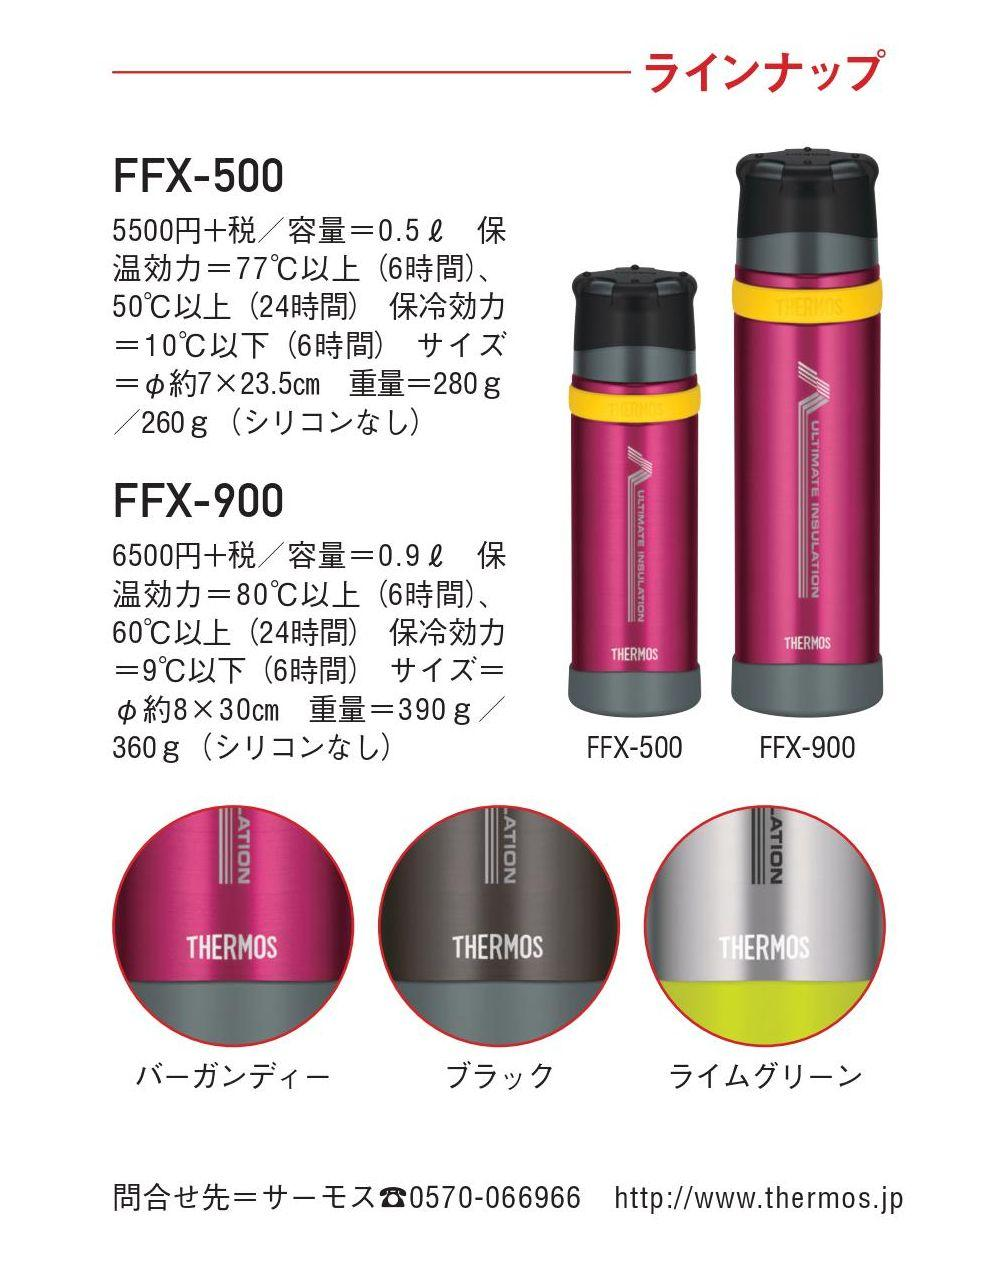 http://www.yamakei.co.jp/products/yk10_thermos_specdata.jpg